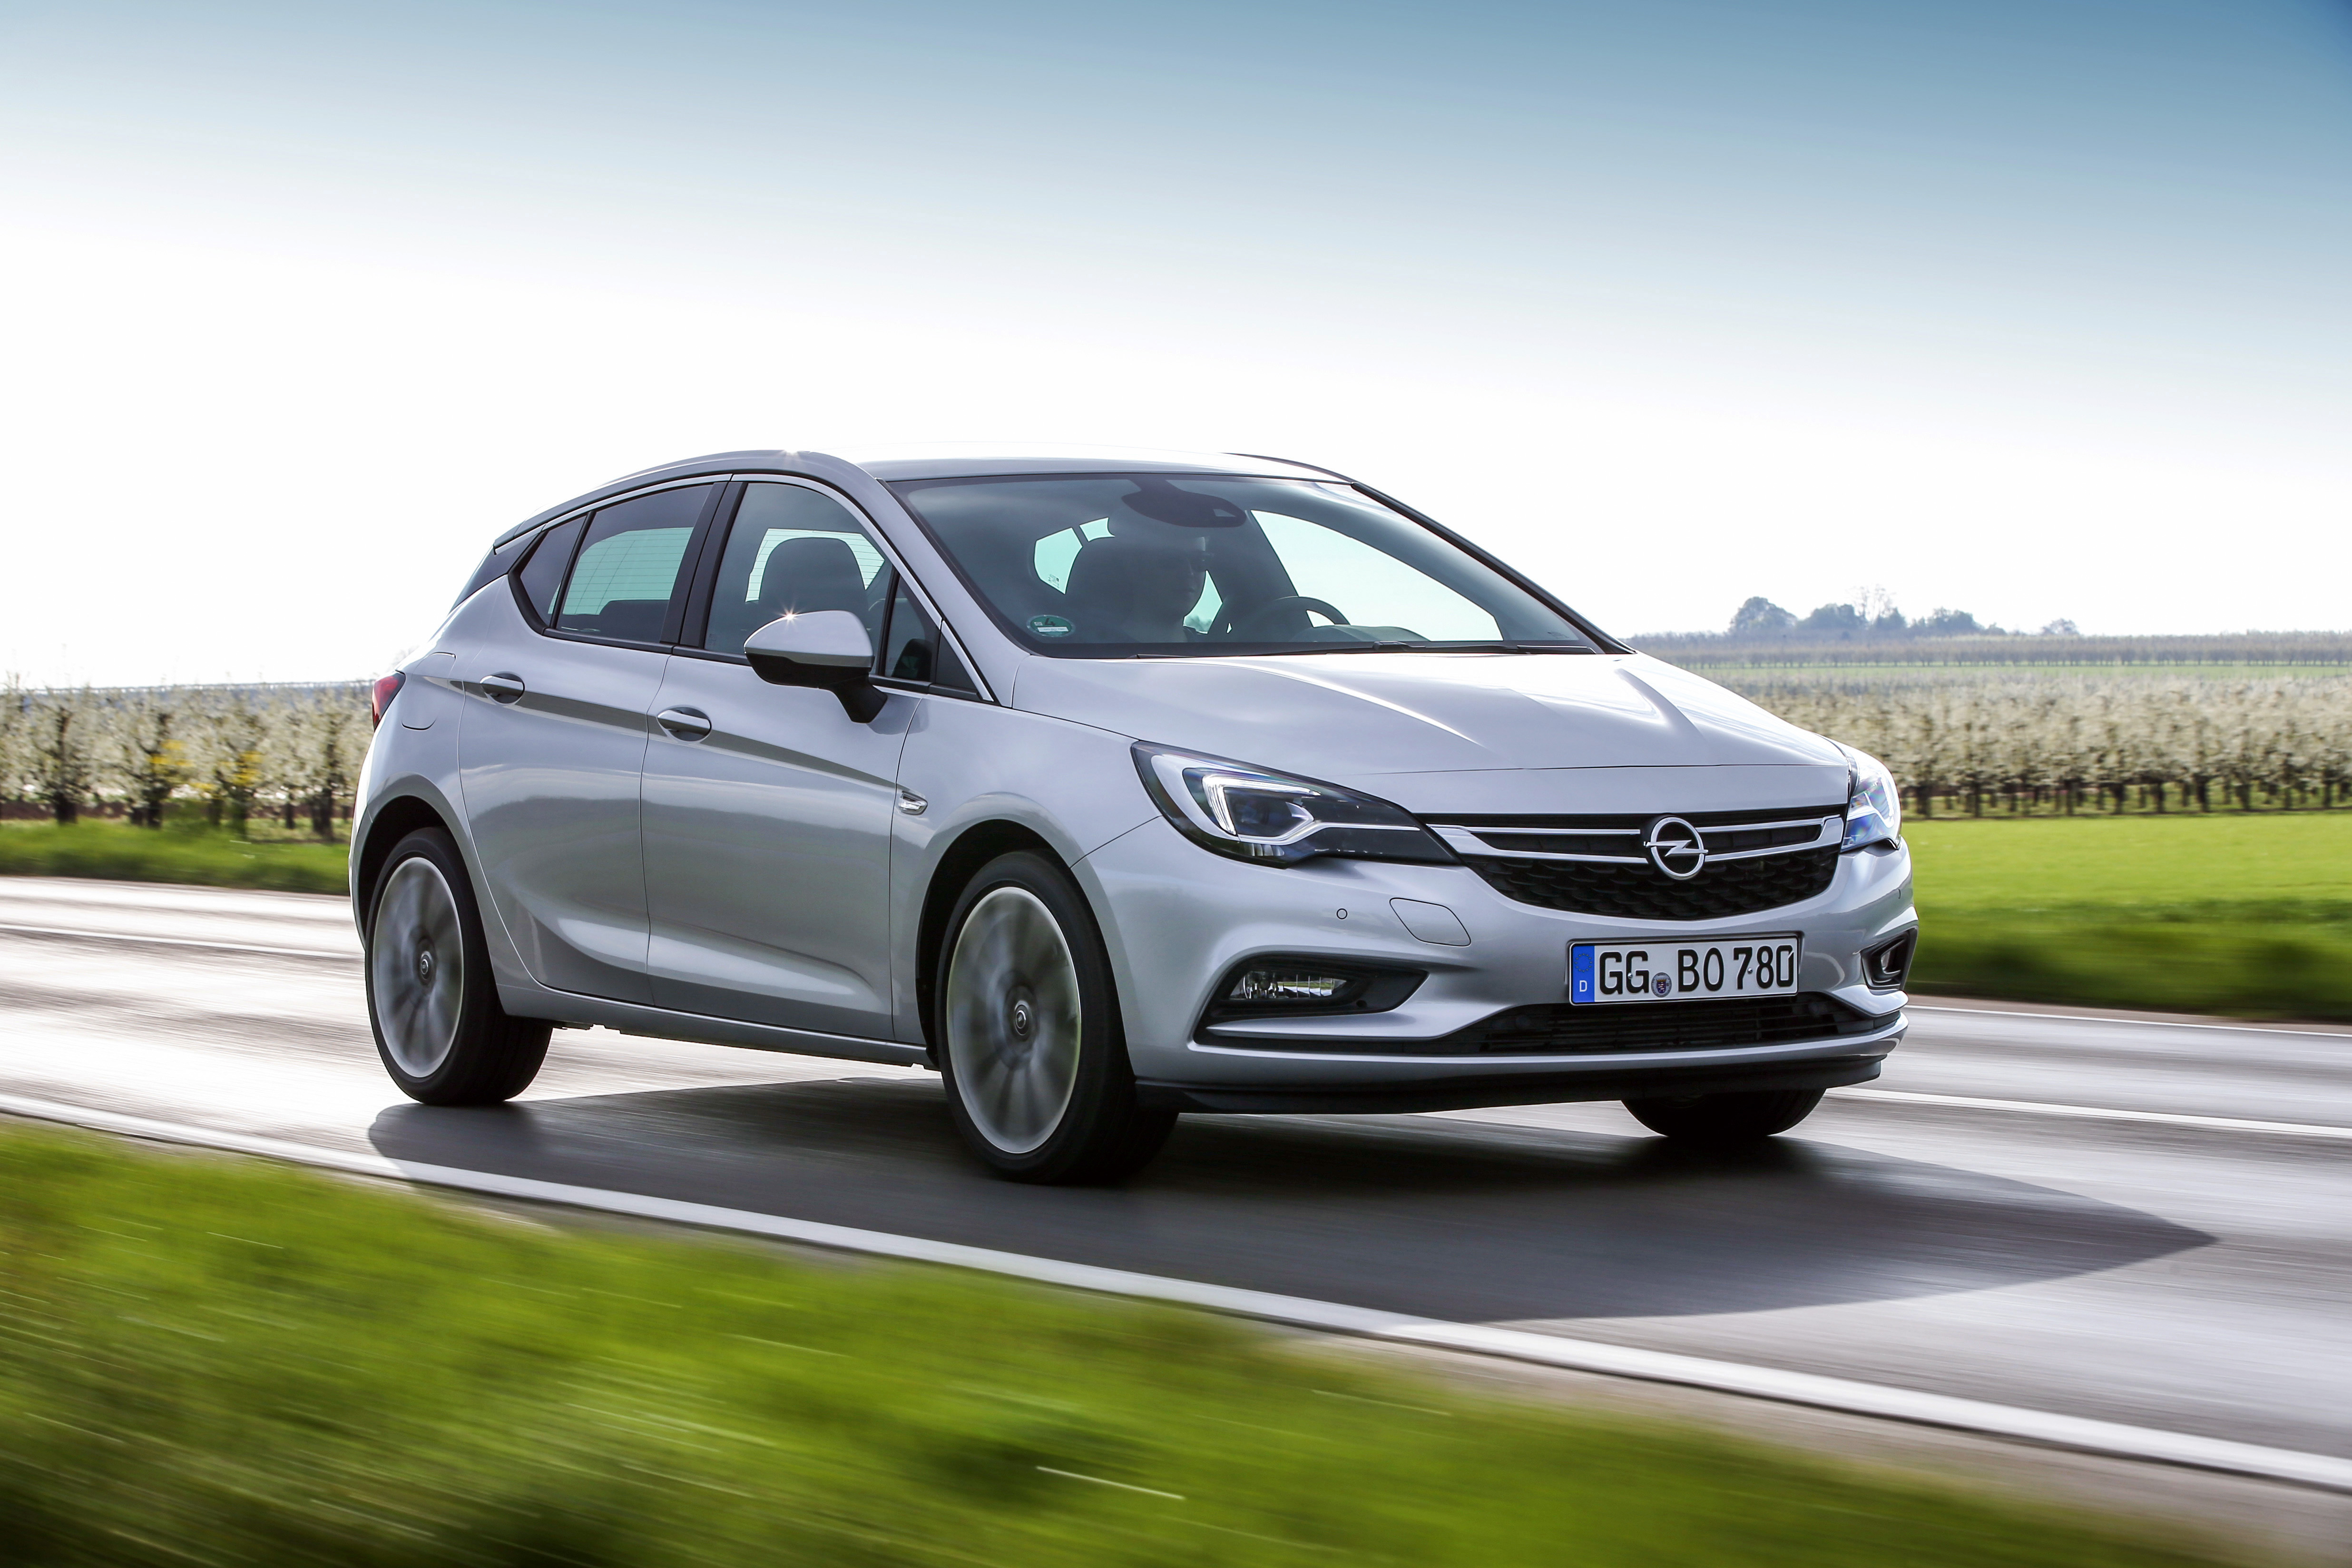 The new Opel Astra is one of the lightest cars in its segment and with the new 1.6-liter twin-turbo engine, few cars can match the Astra 1.6 BiTurbo CDTI for power, performance, refinement and fuel economy.